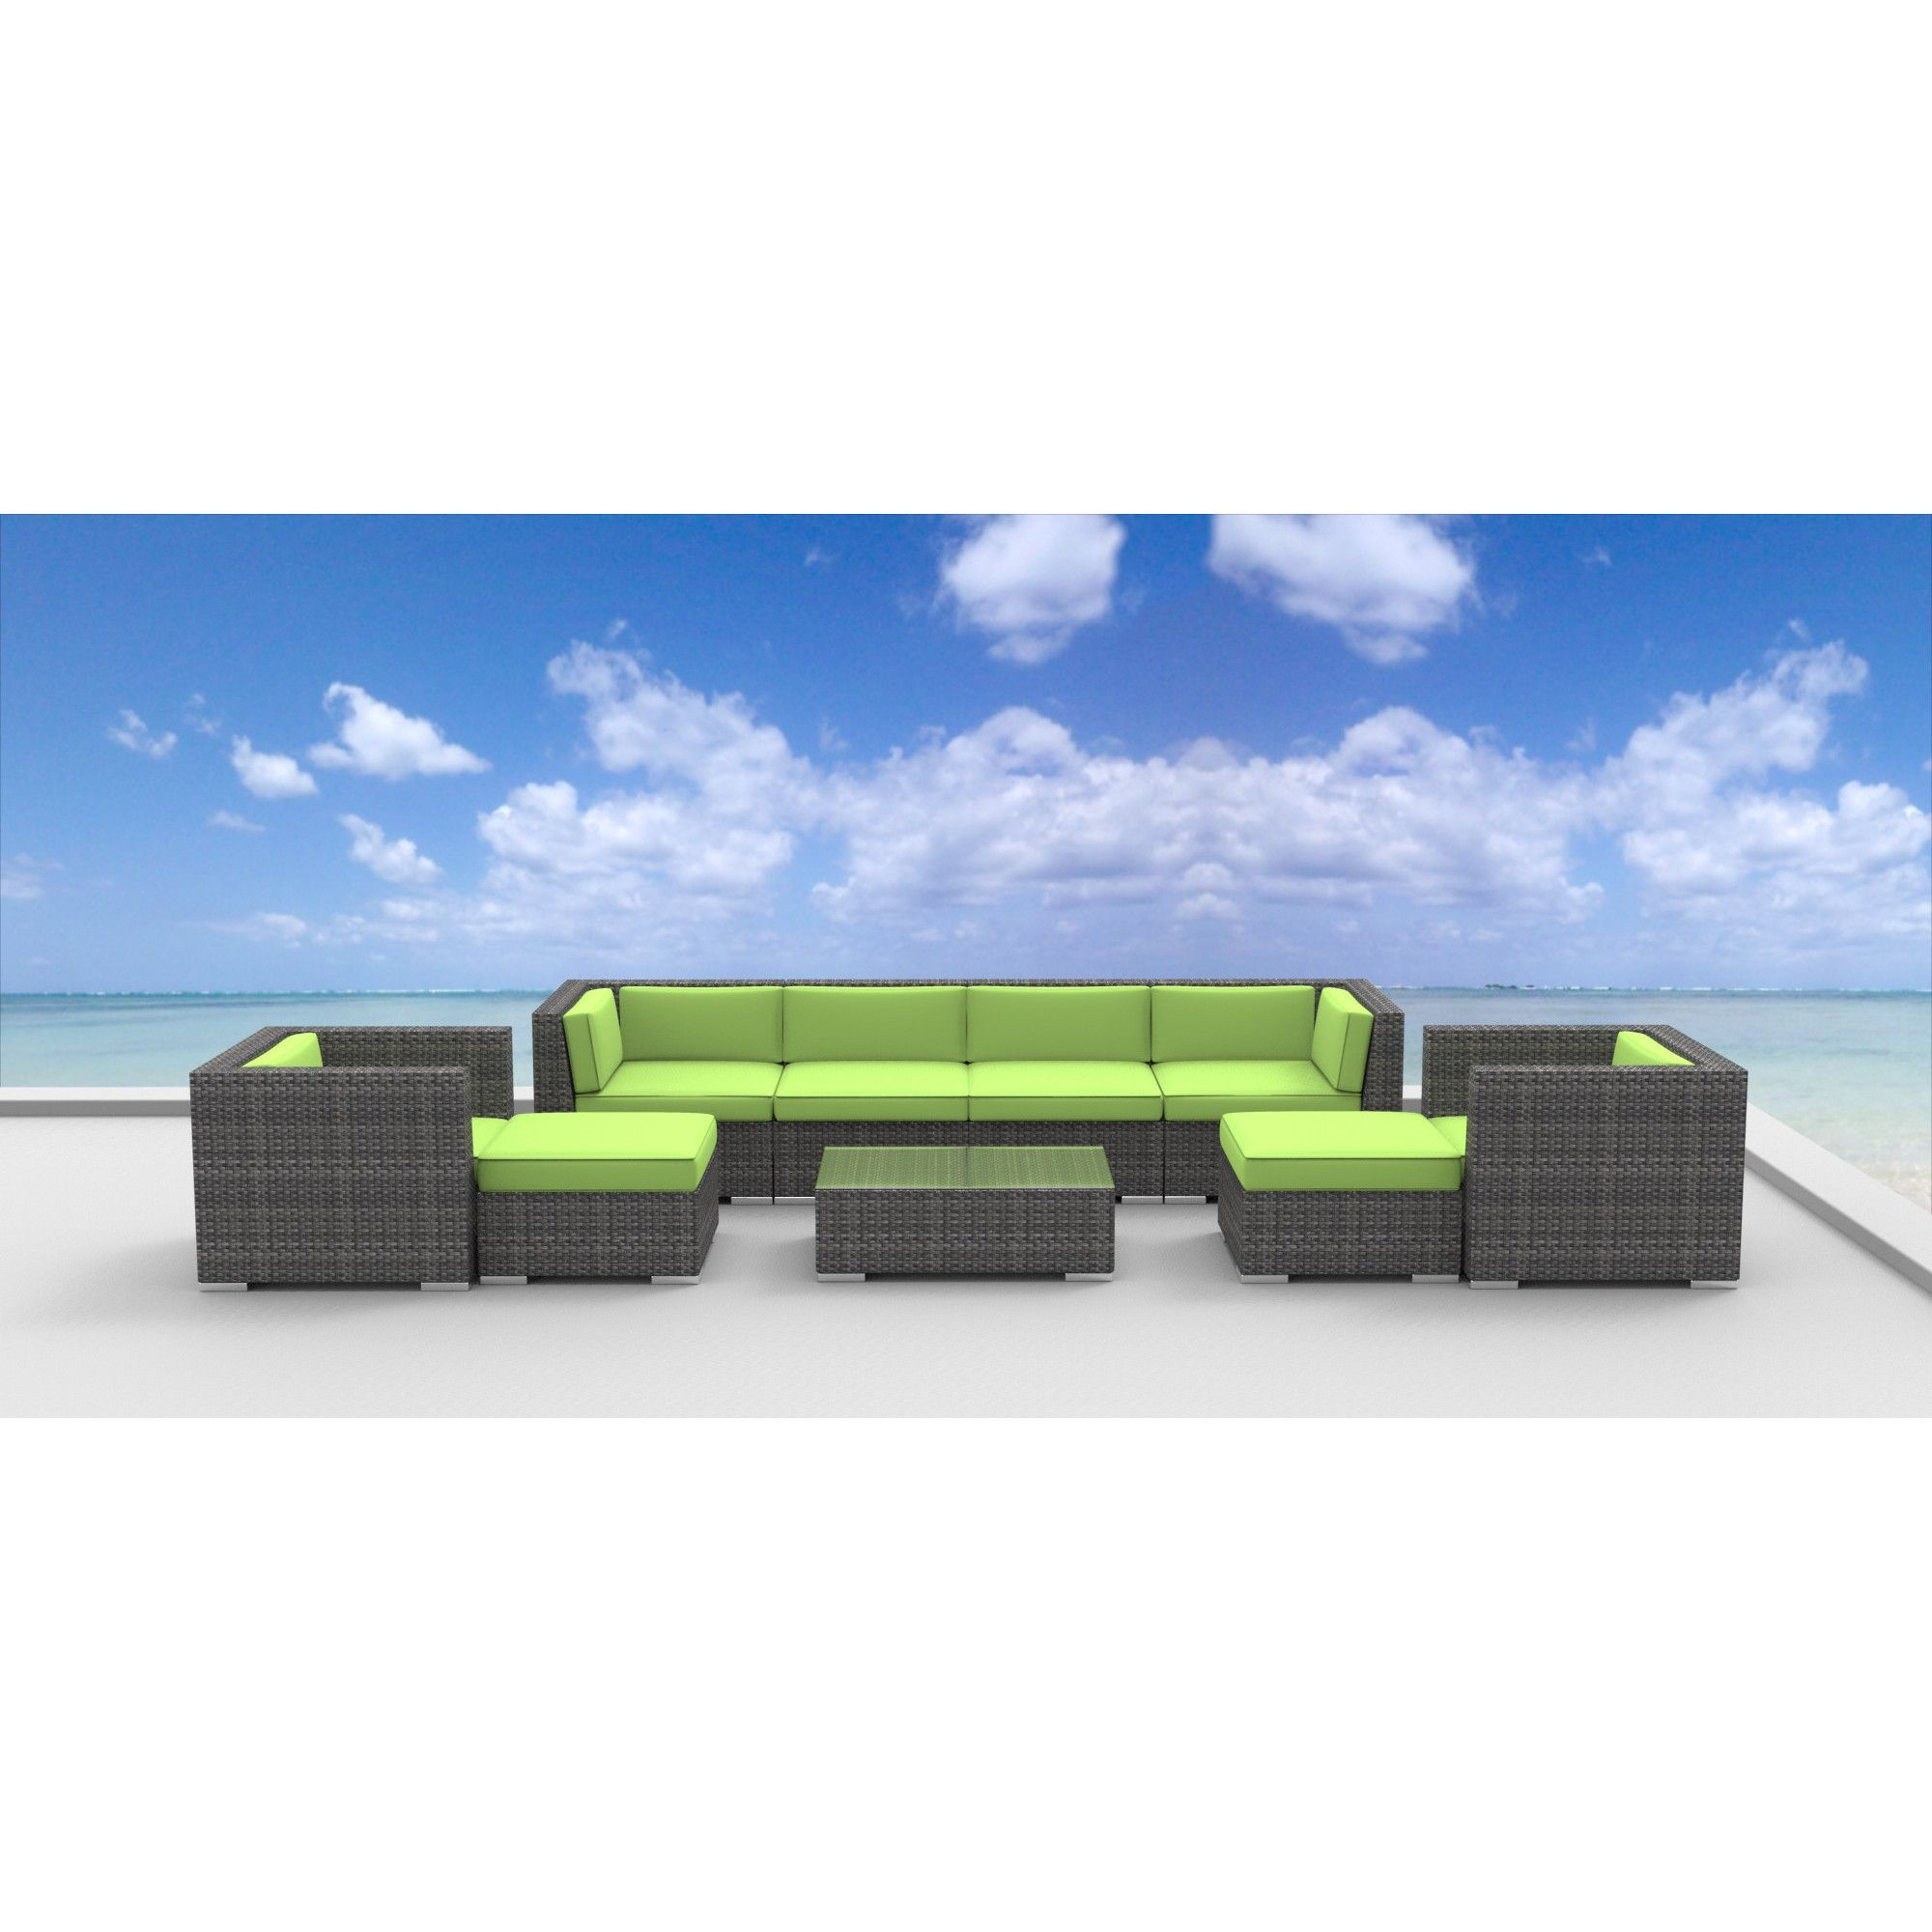 Urban Furnishing Fiji 9 Piece Modern Outdoor Backyard Wicker Rattan Patio Furniture Sectional Sofa Set